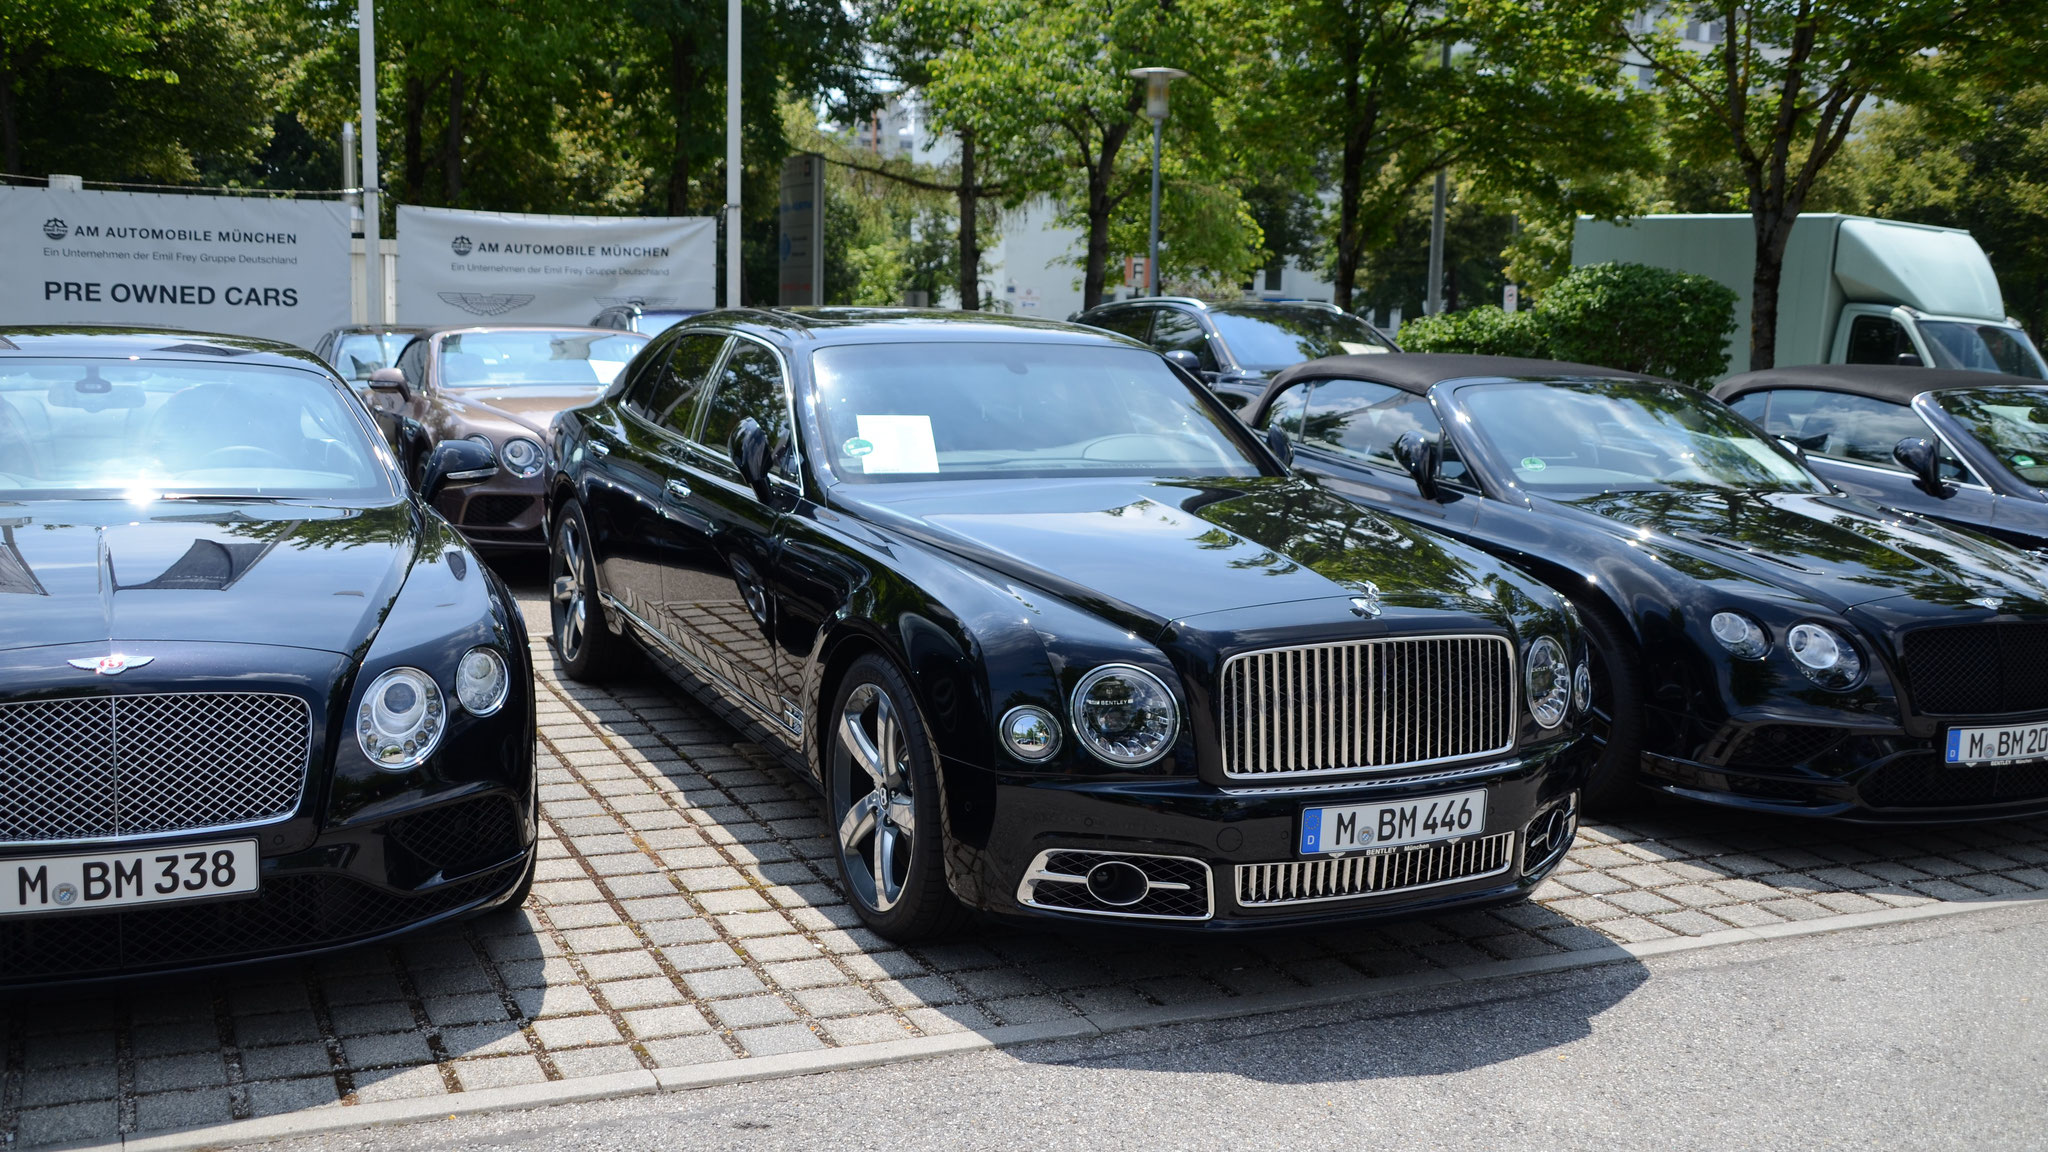 Bentley Mulsanne - M-BM-446